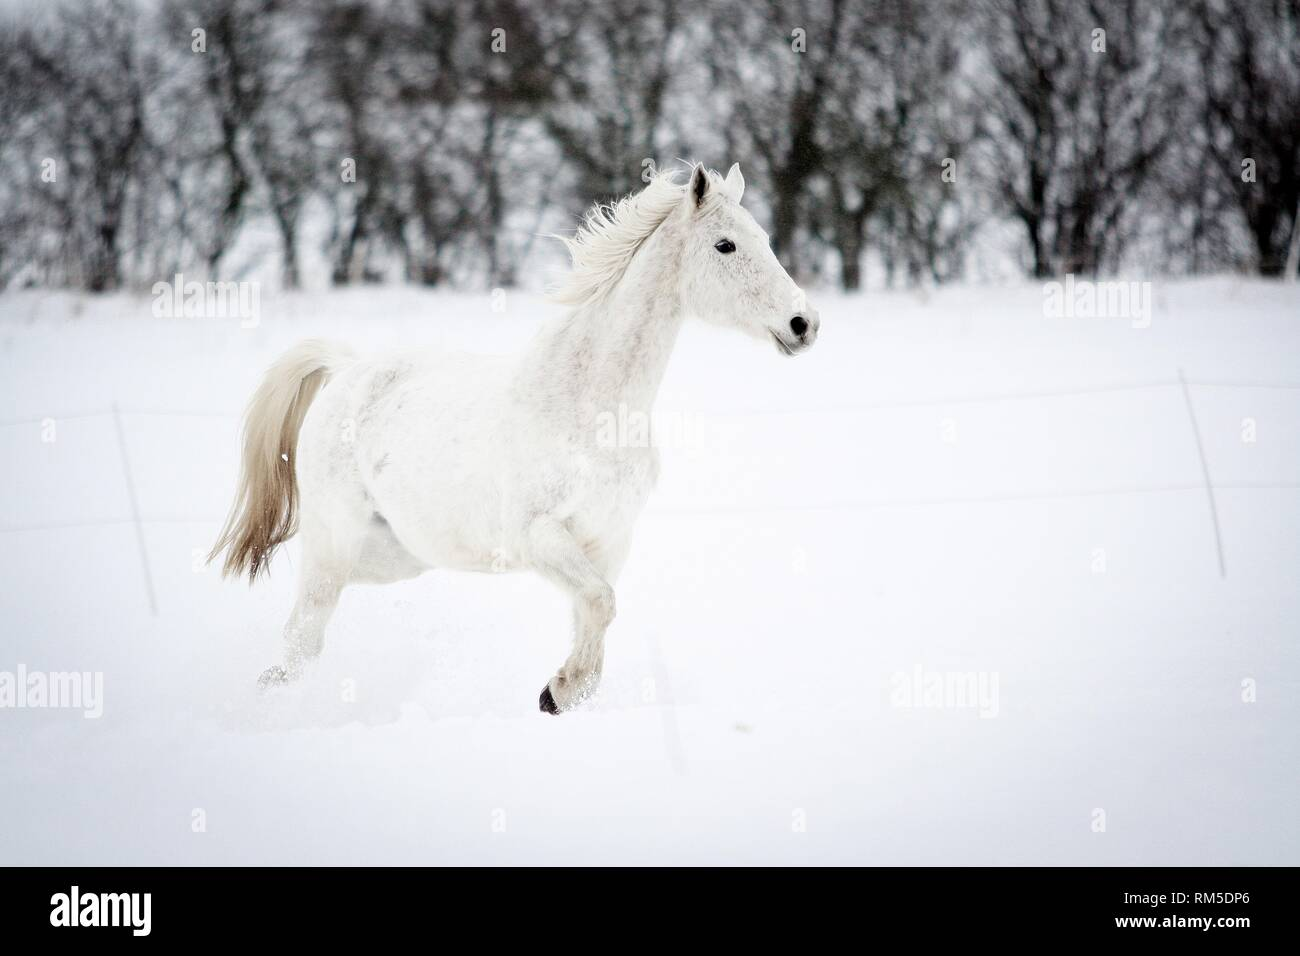 Arabian Horse In Snow Stock Photo Alamy